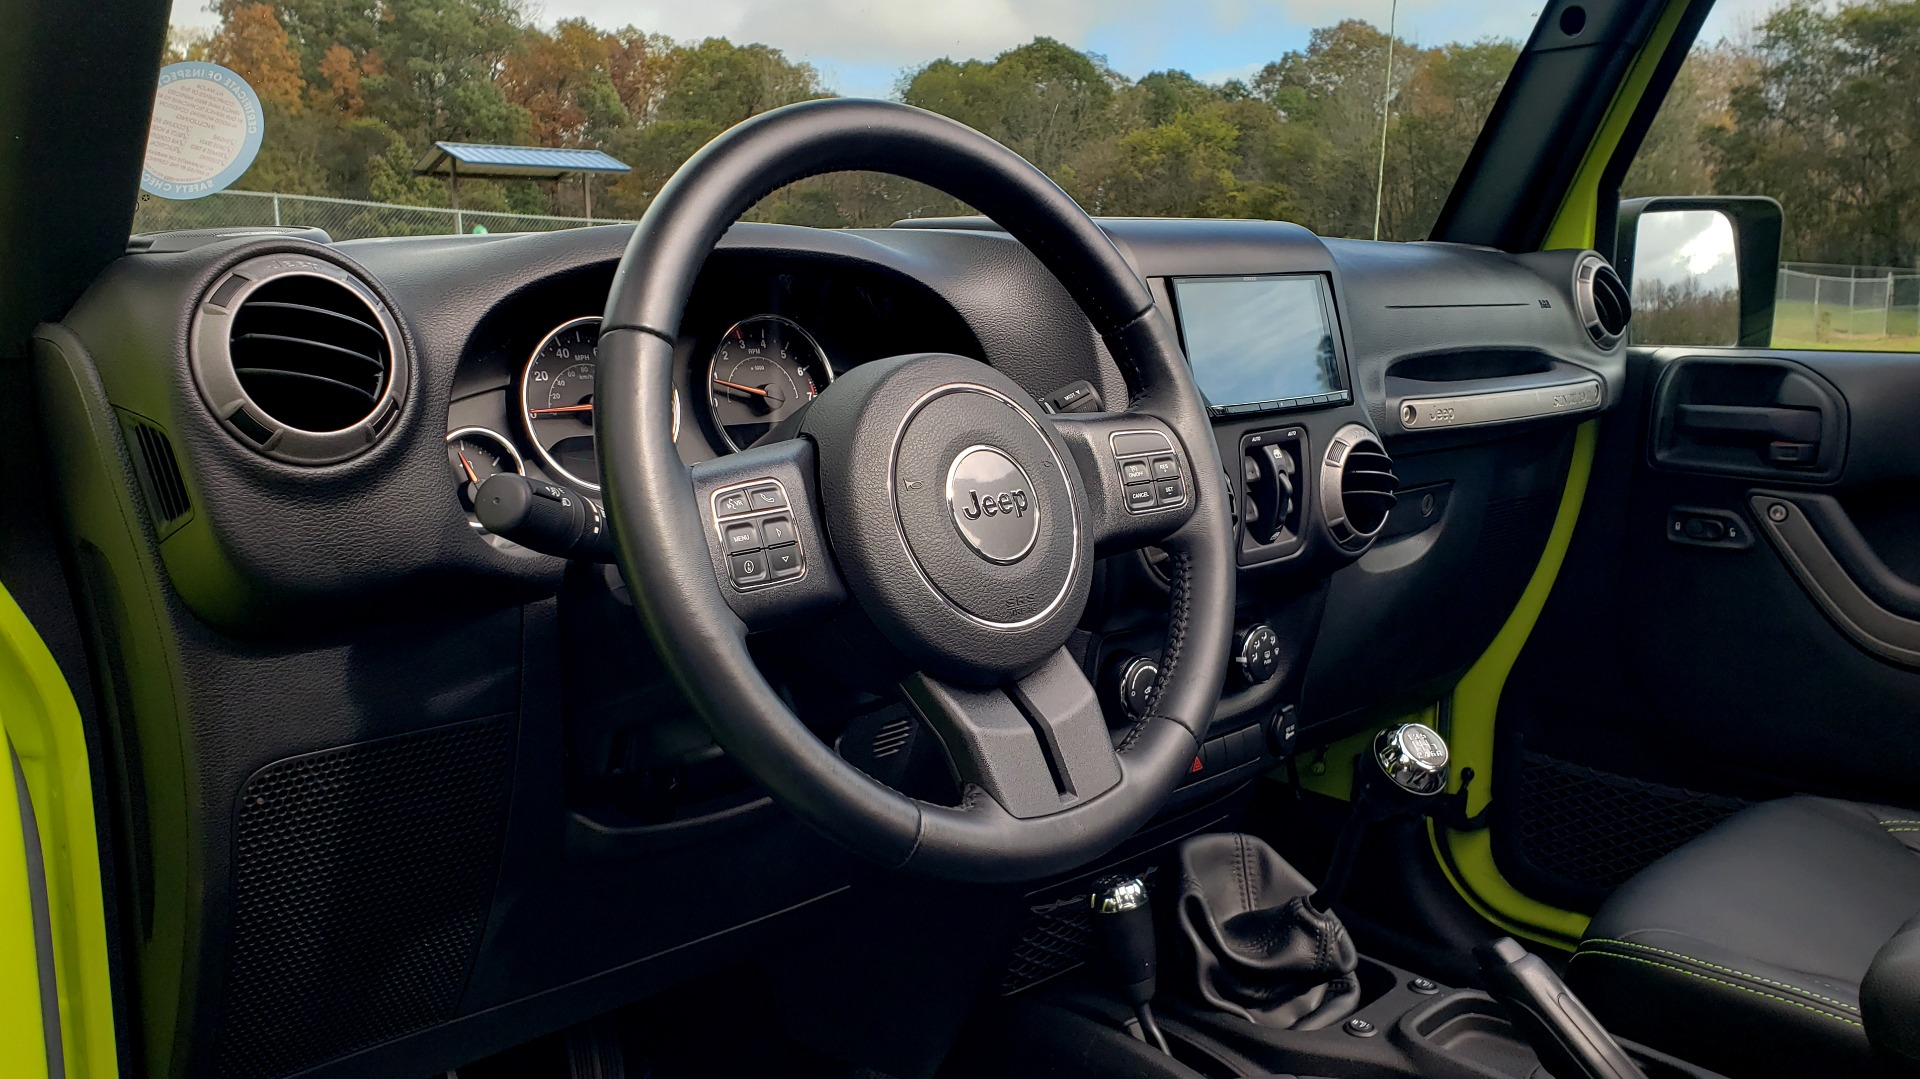 Used 2016 Jeep WRANGLER UNLIMITED SPORT 4X4 / POWER TOP / NAV / HTD STS / REARVIEW for sale $36,999 at Formula Imports in Charlotte NC 28227 52